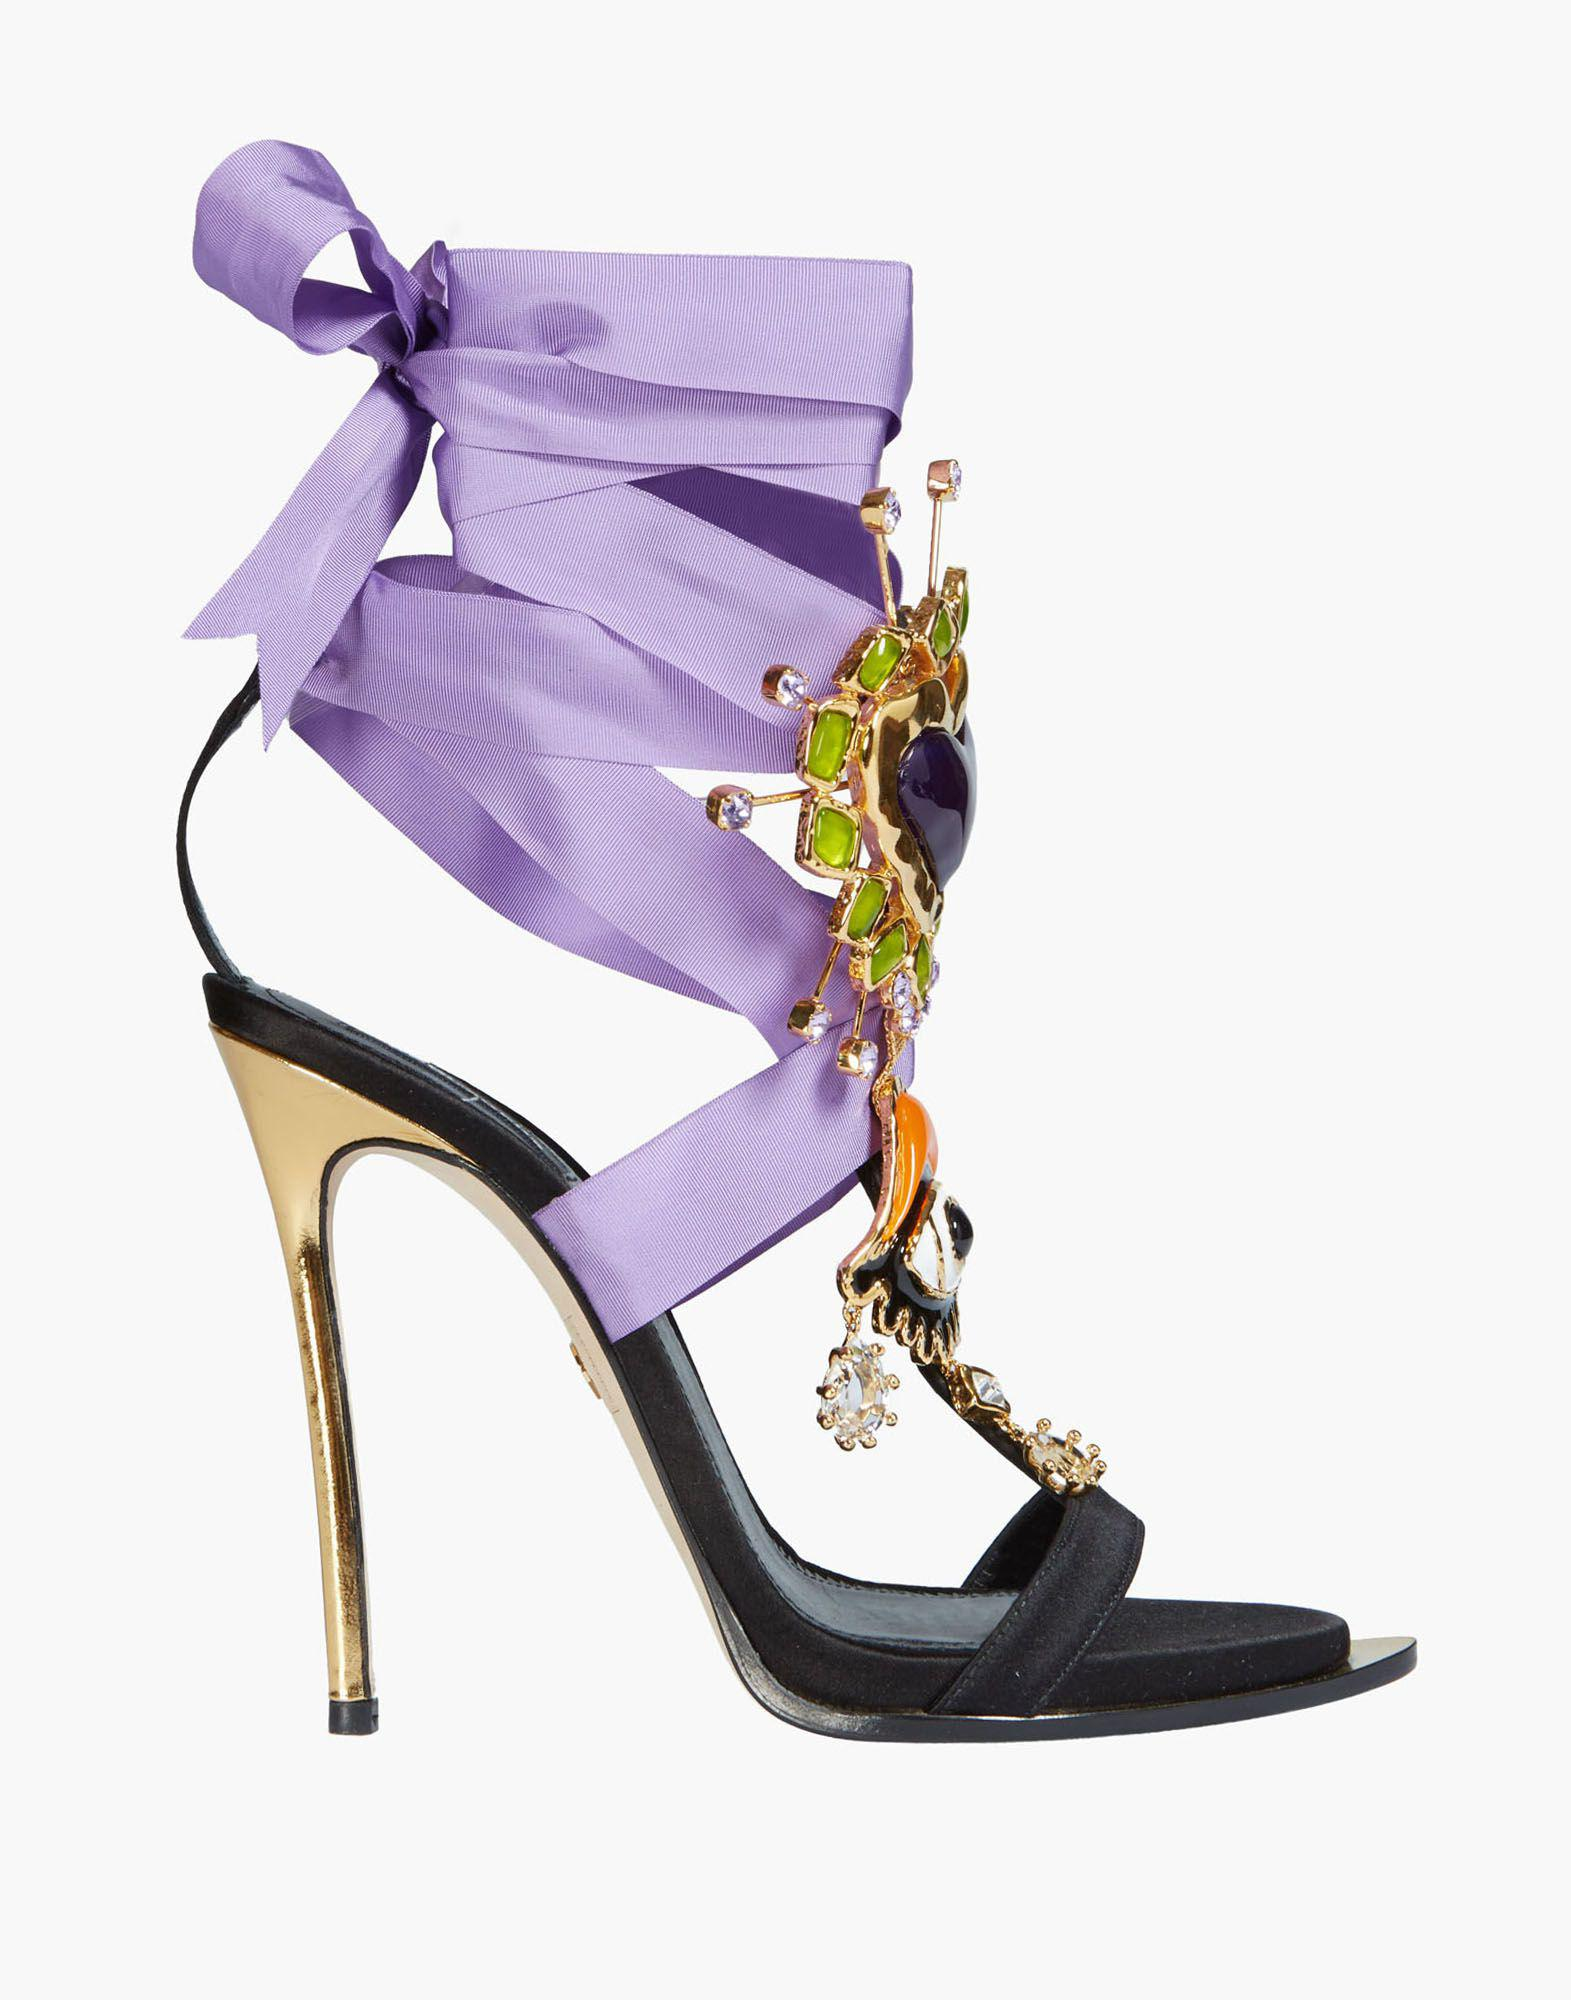 acde089db3f4 Lyst - DSquared² Lace-up Embellished Satin Sandal in Black